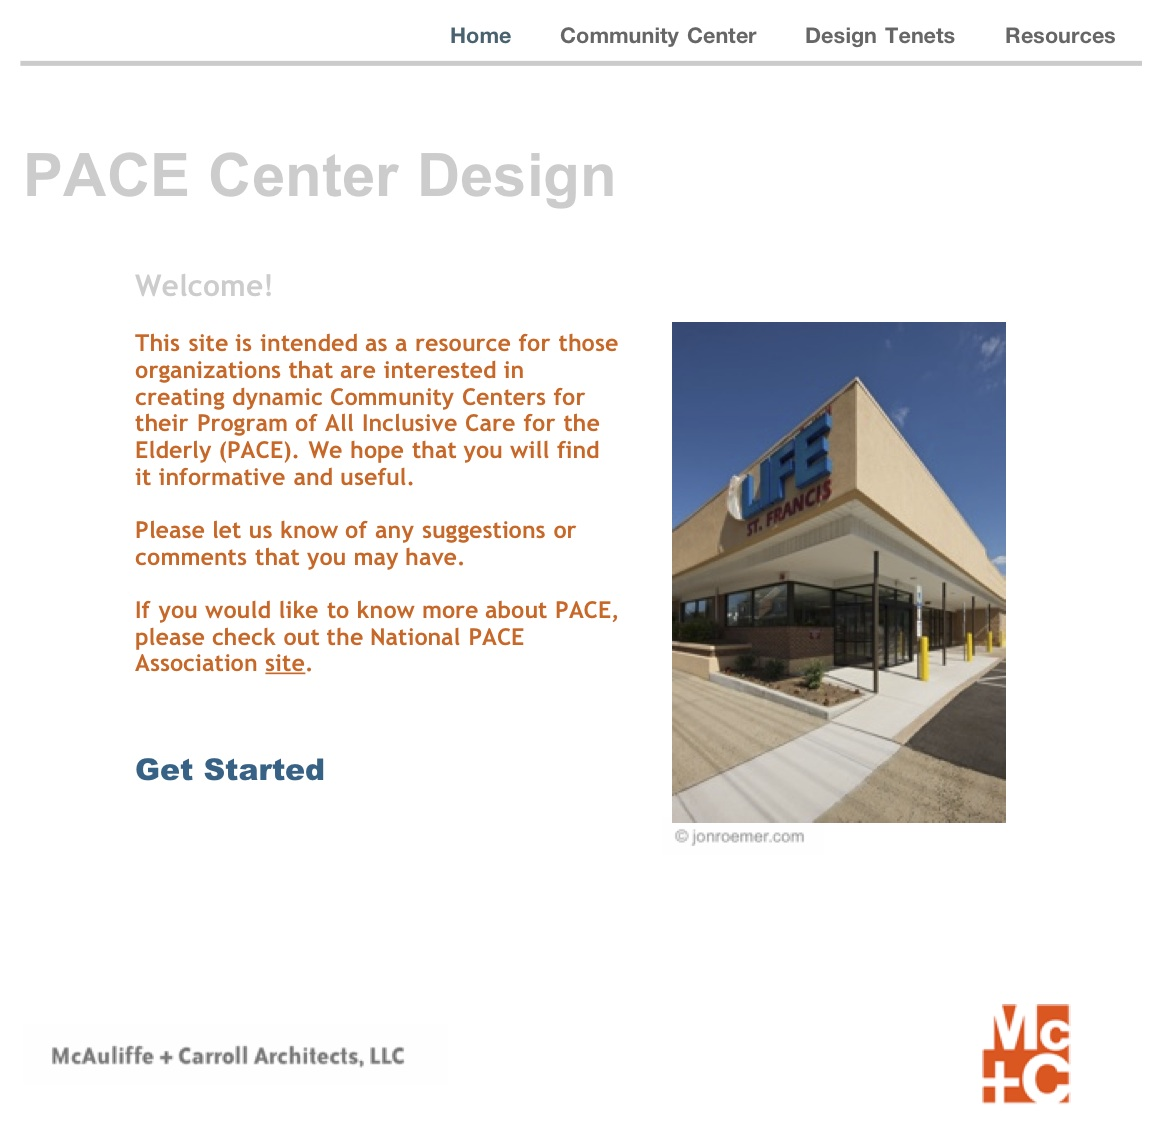 PACE Center Design